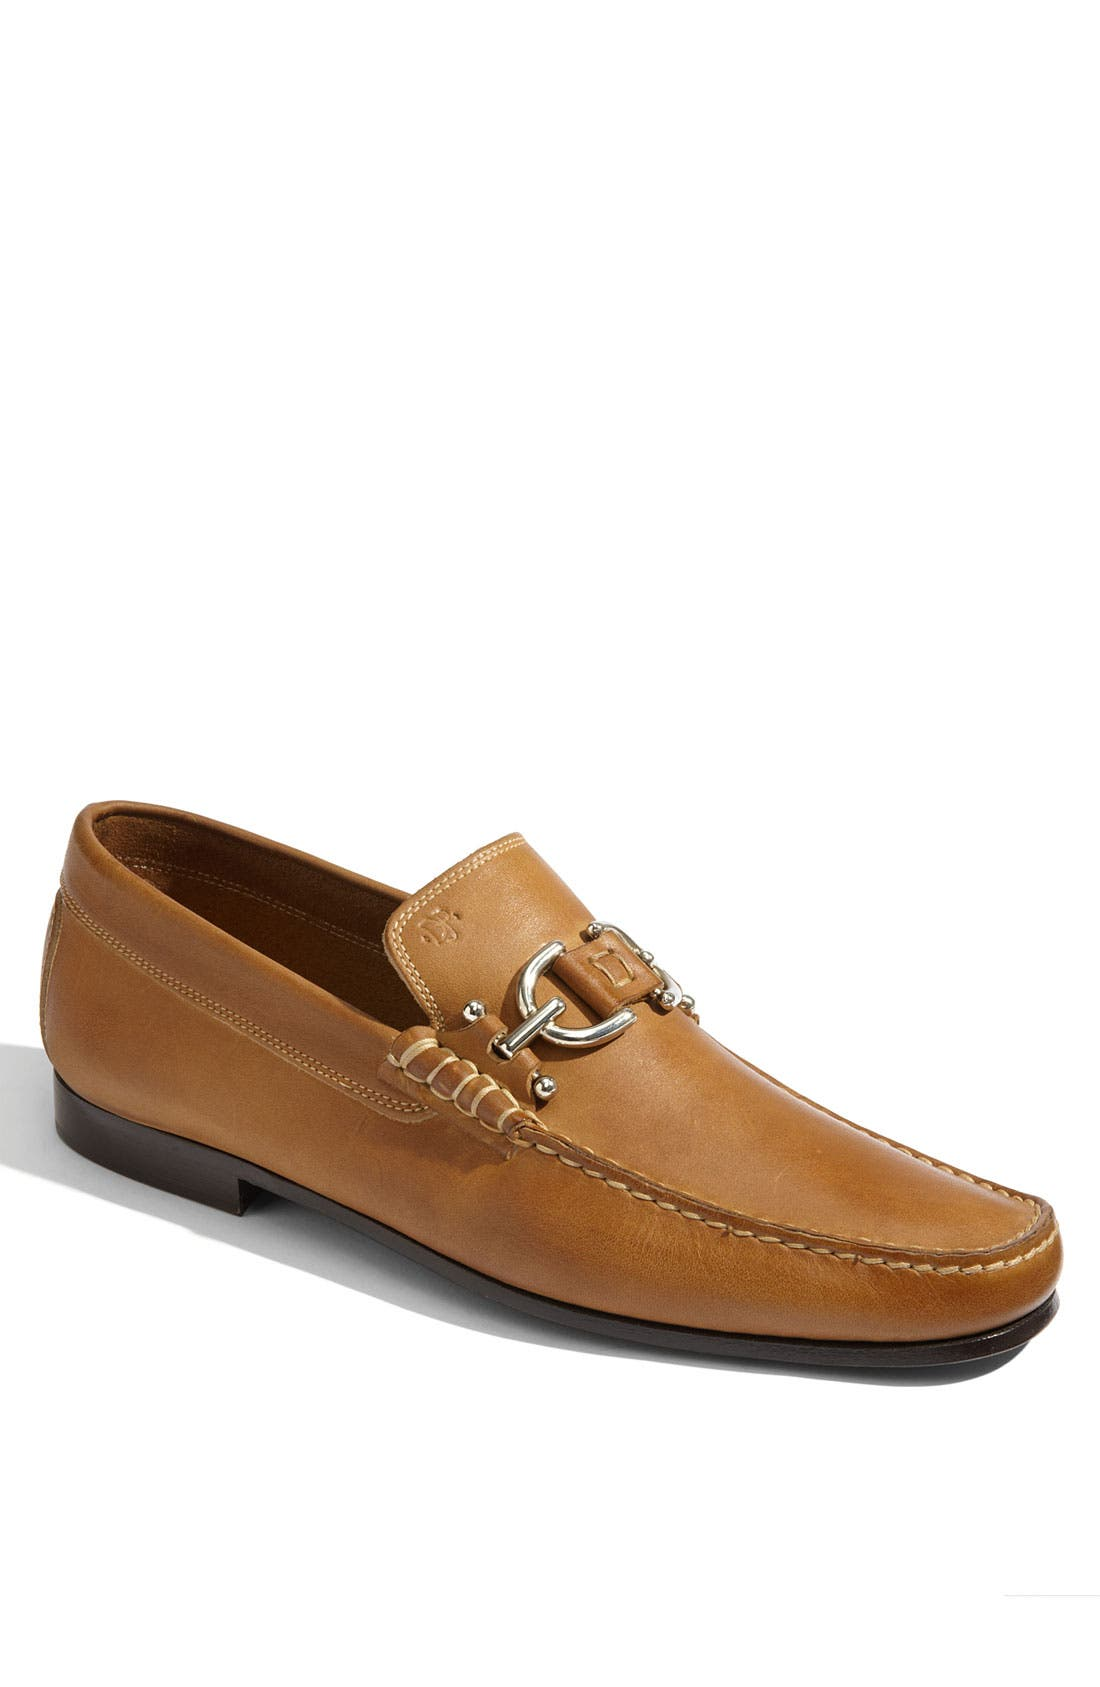 Main Image - Donald J Pliner 'Dacio' Loafer